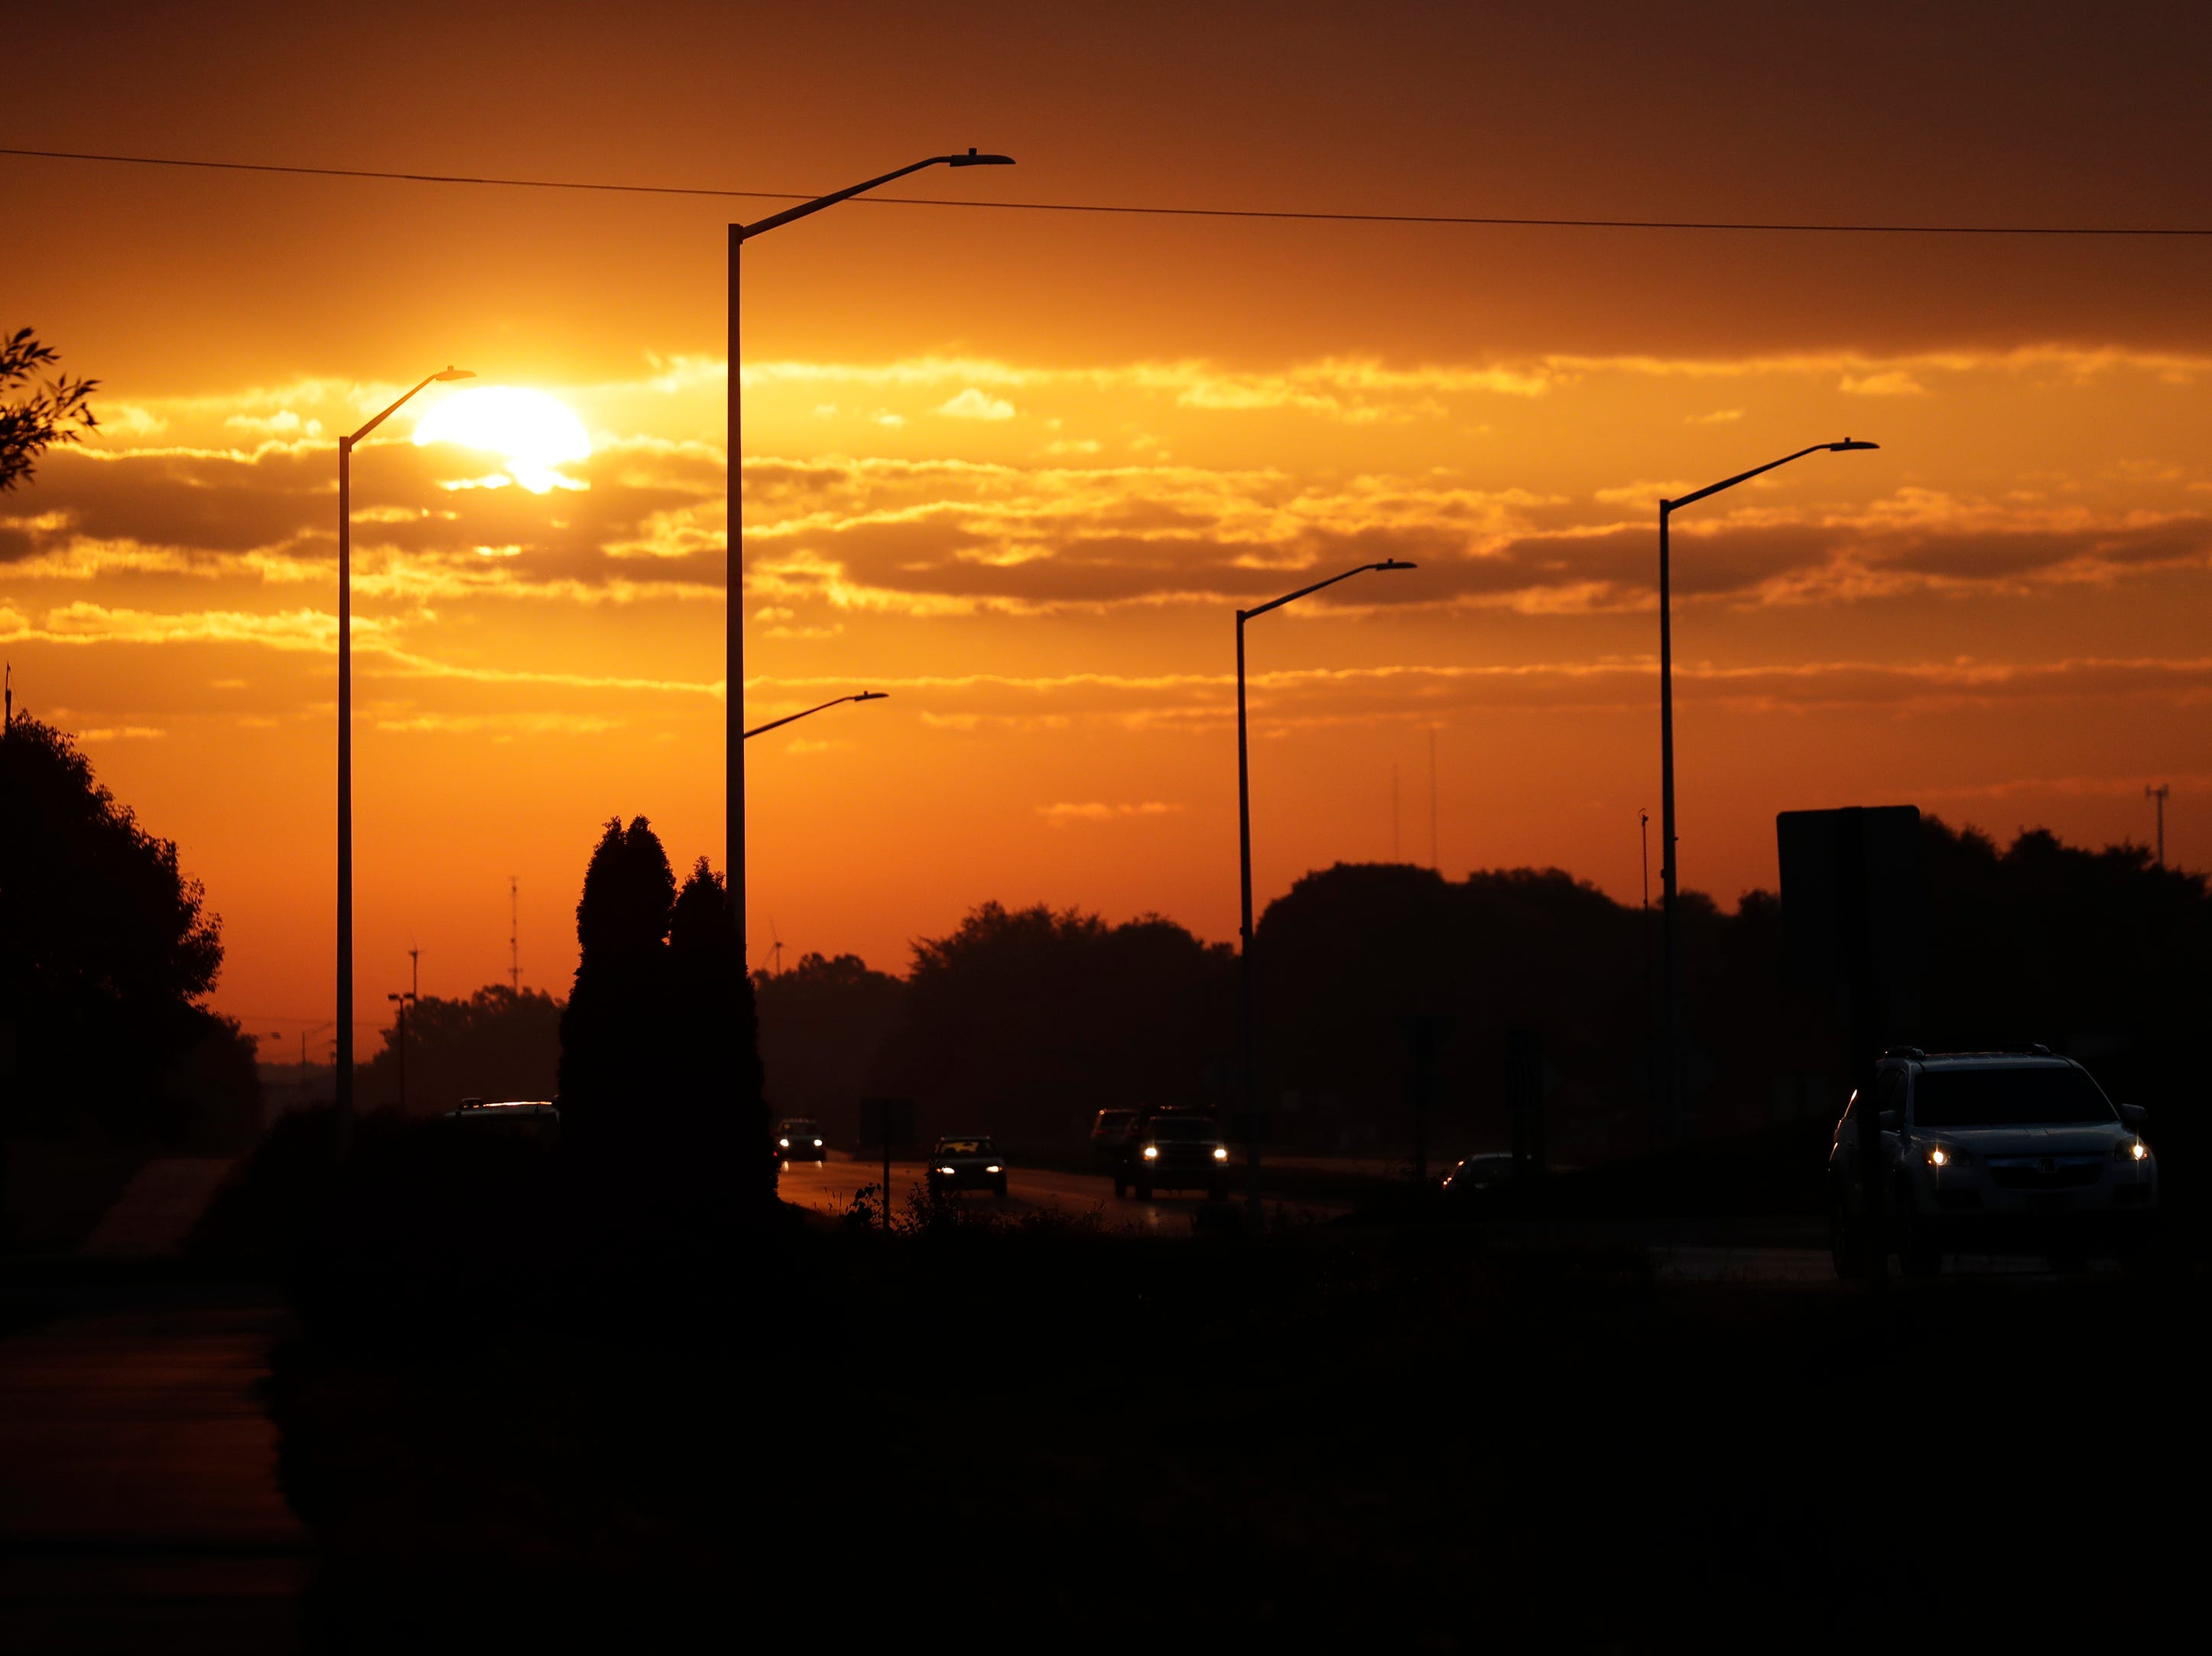 Commuters travel along County Rd CE as the sun rises Friday, Sept. 14, 2018, in Combined Locks, Wis. Dan Powers/USA TODAY NETWORK-Wisconsin